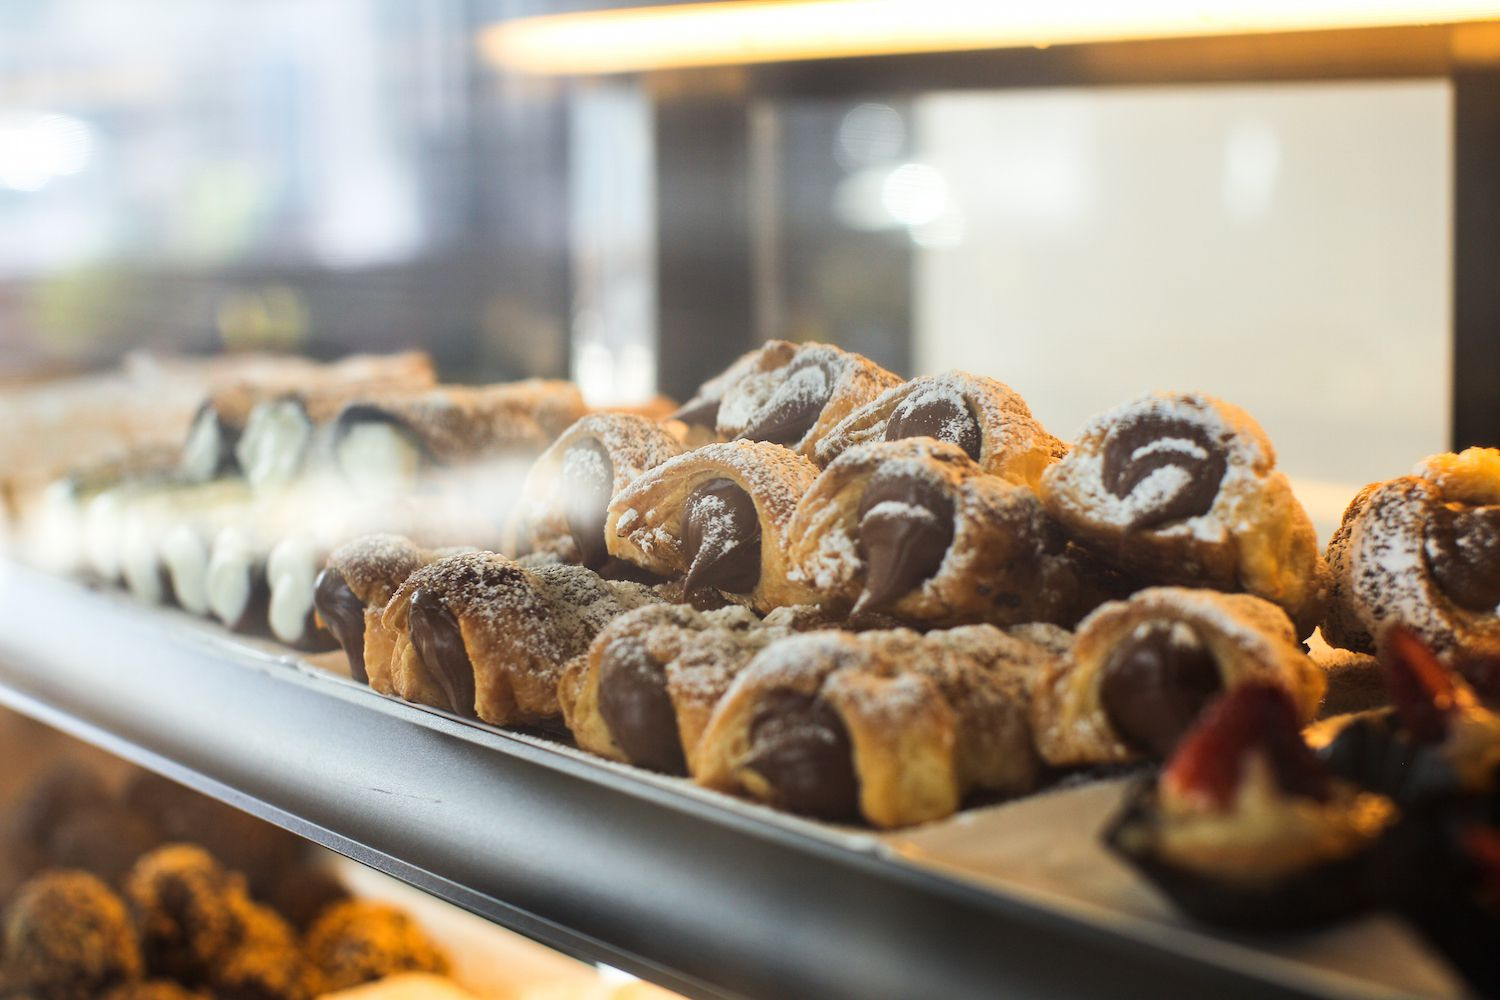 Pastries in a spanish pasteleria or bakery